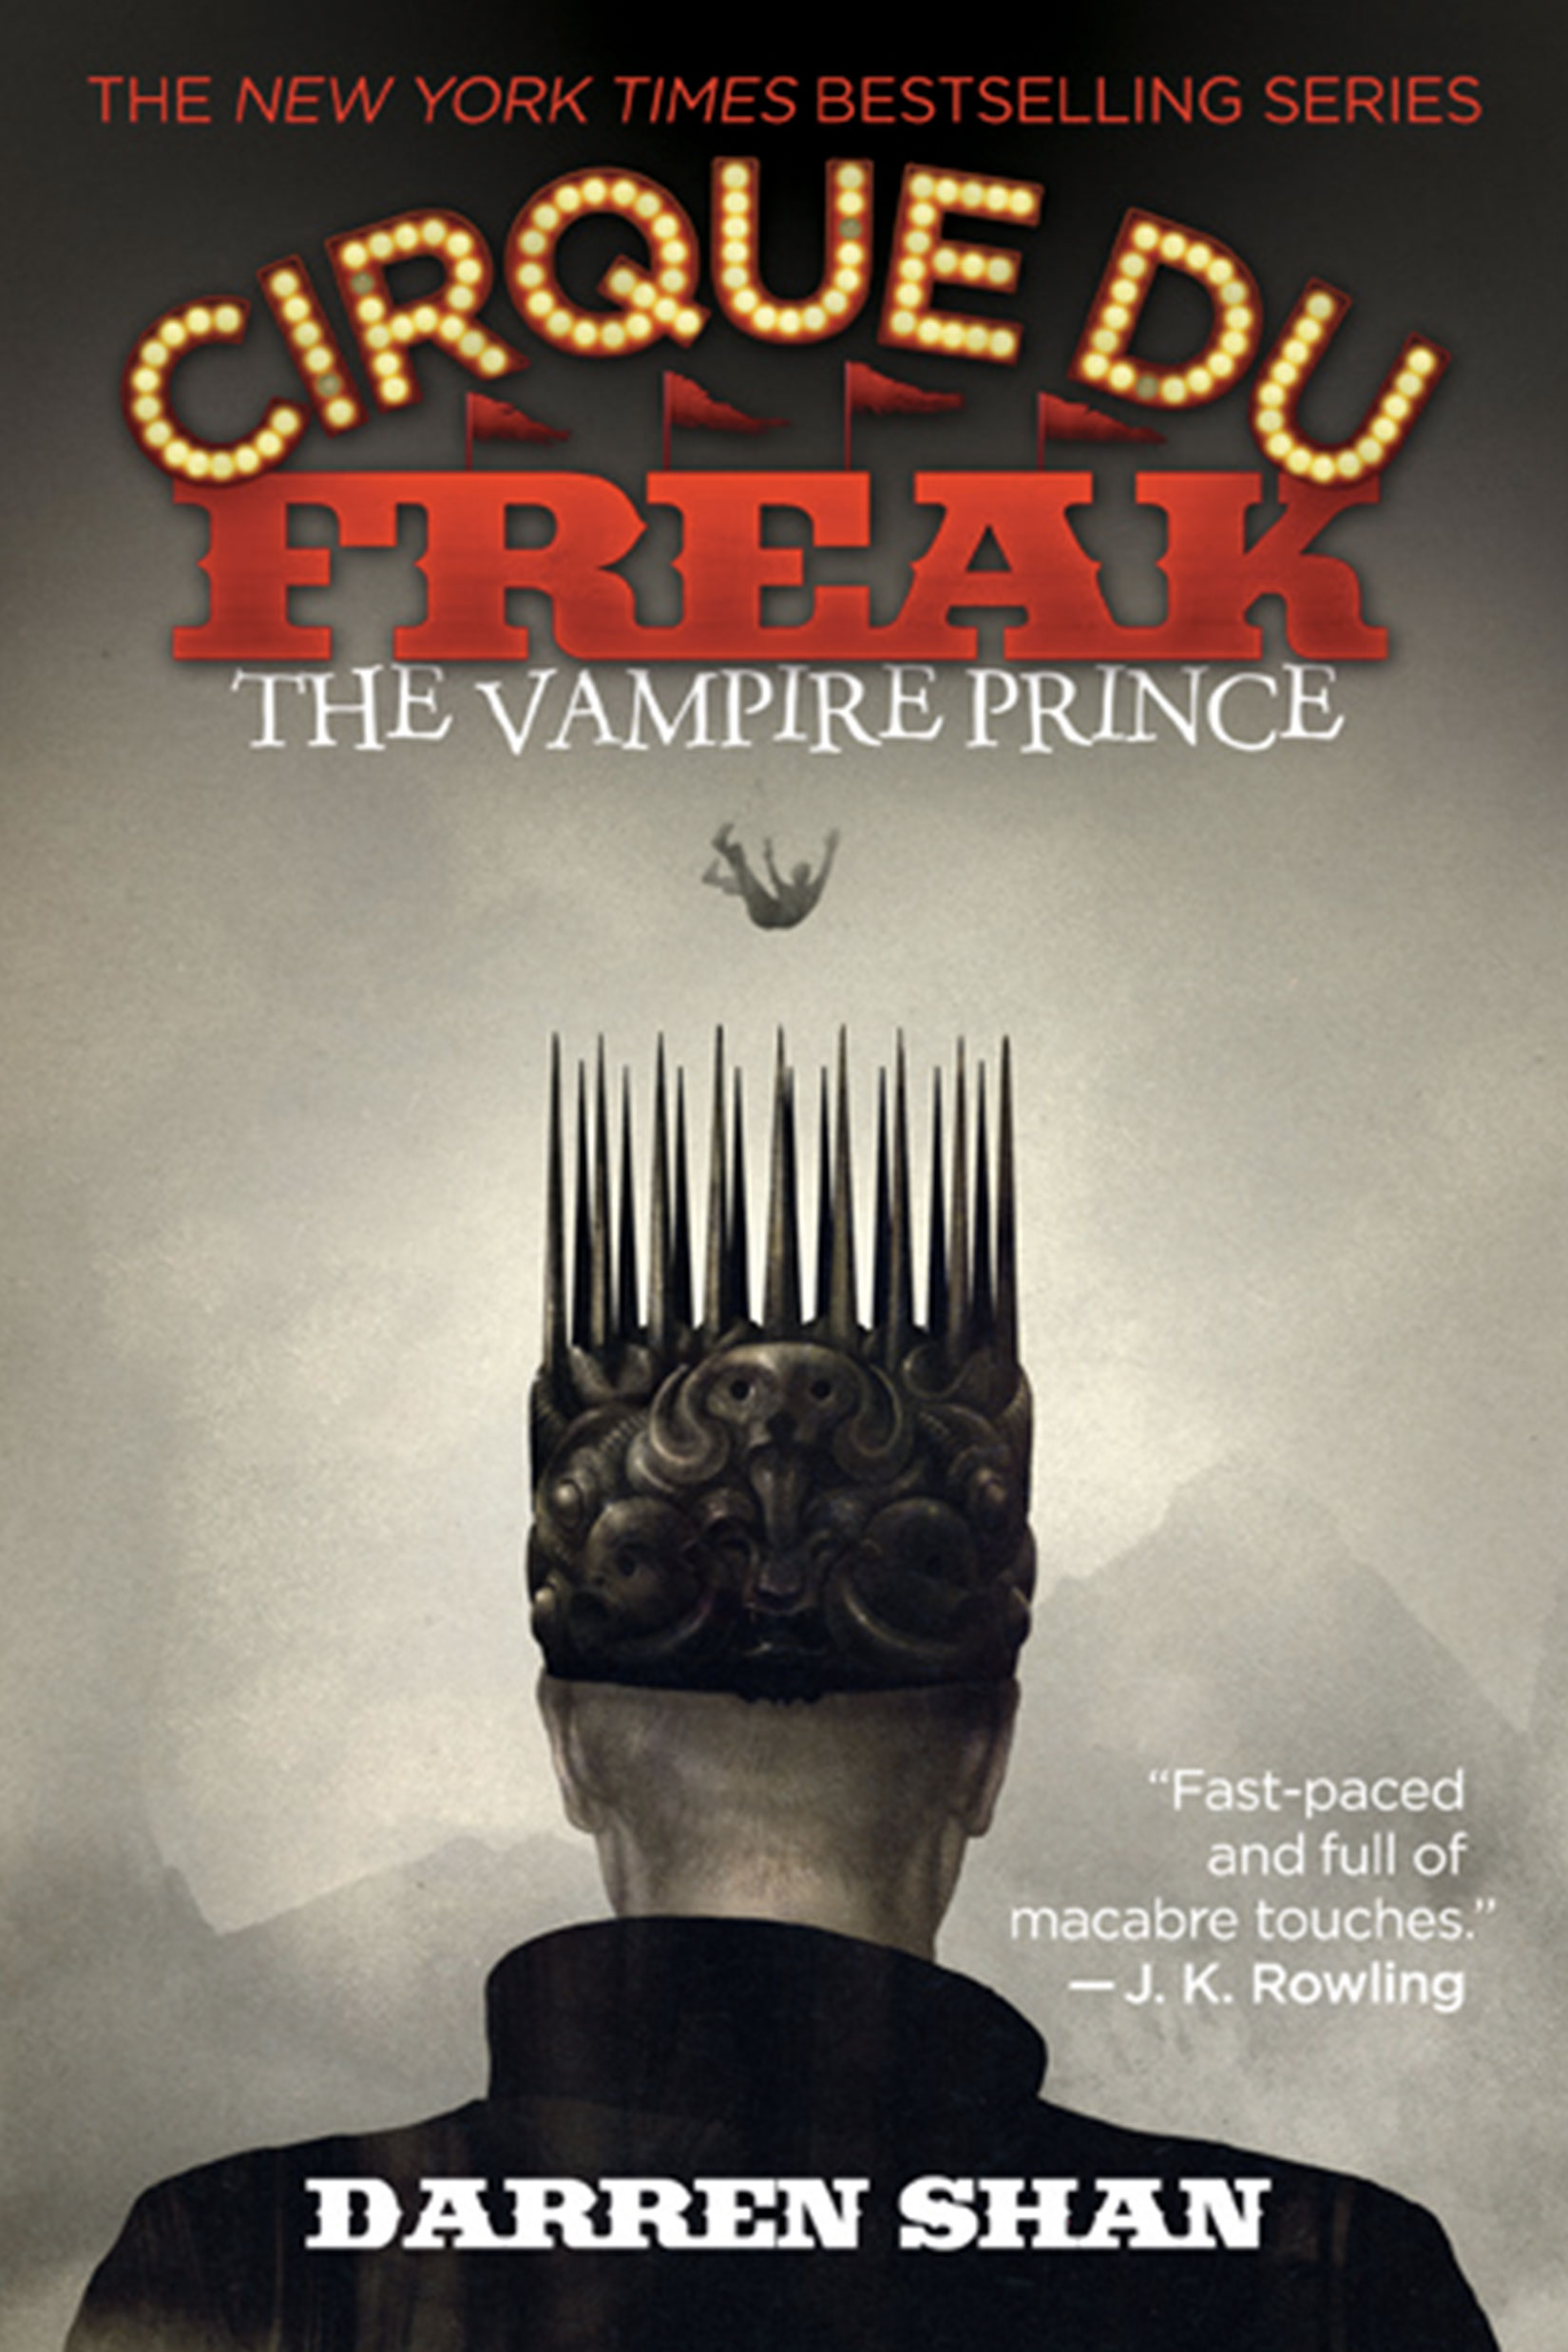 Cirque Du Freak: The Vampire Prince by Darren Shan Designed by Ben Mautner for Little, Brown Logo & Identity by Ben Mautner. Illustrated by Sam Weber.